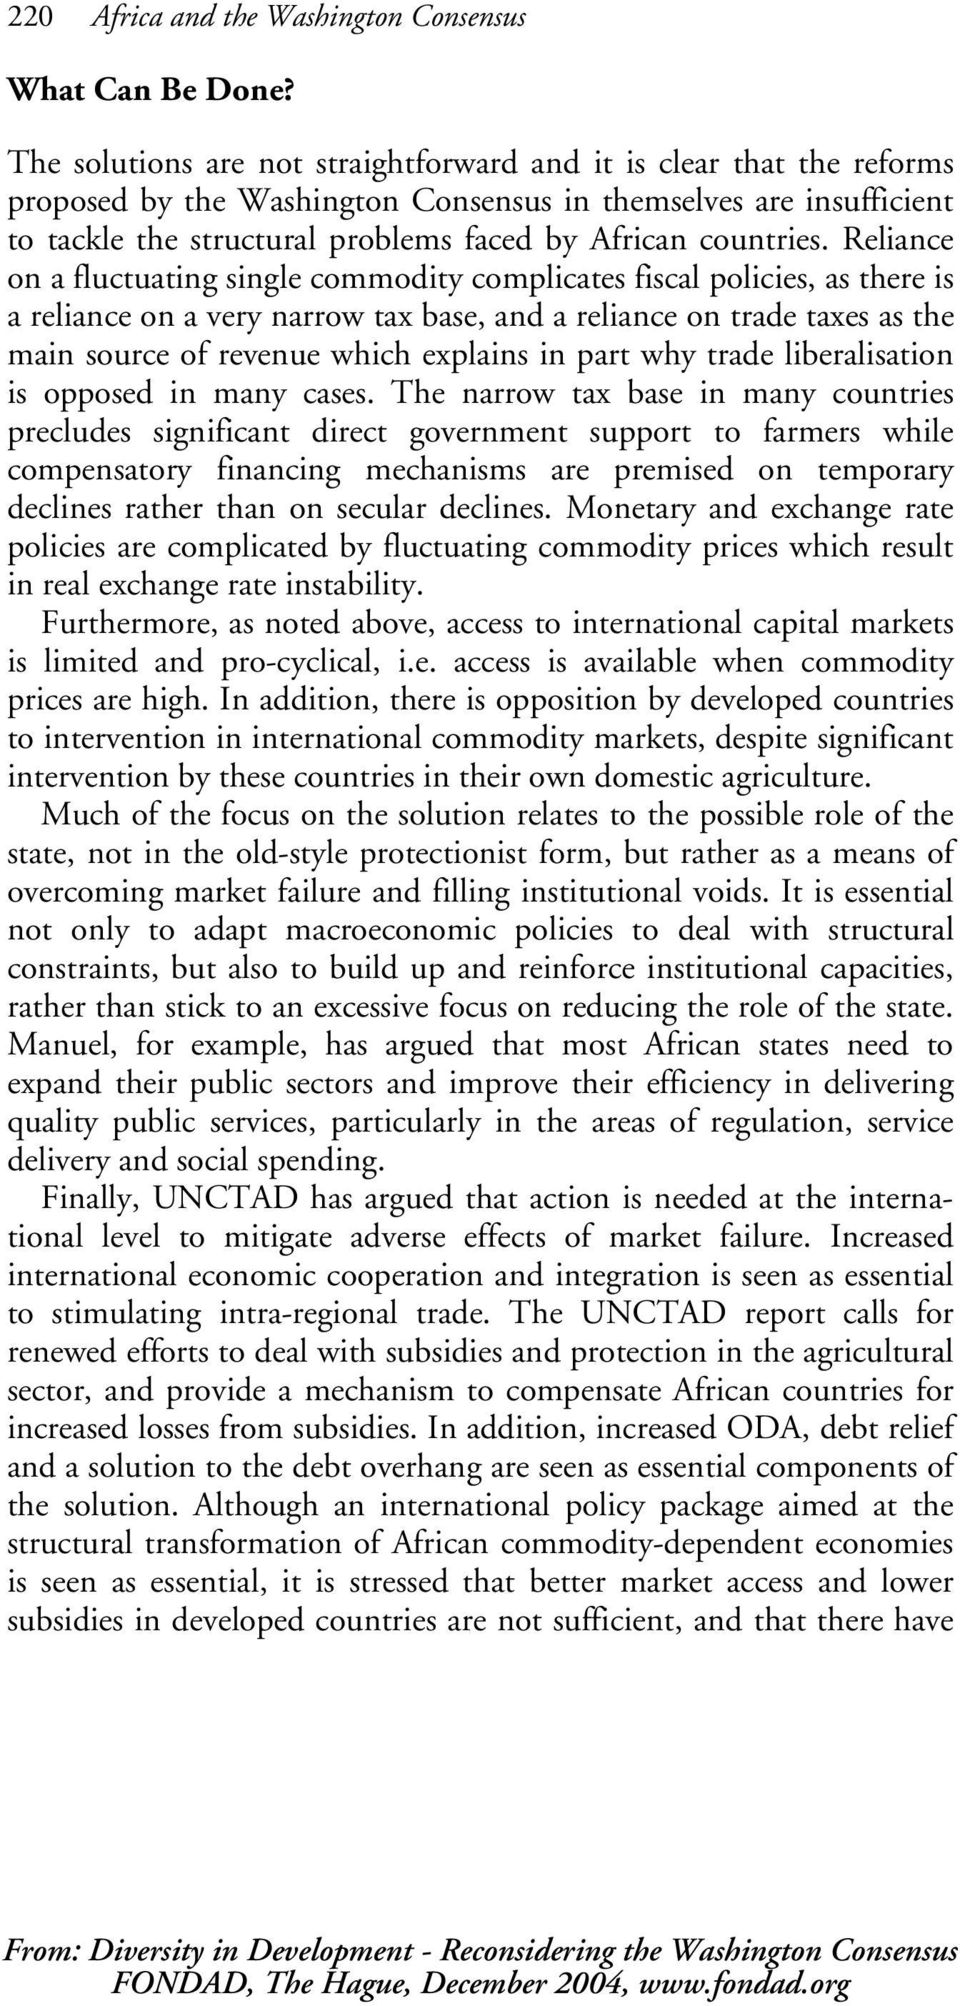 Reliance on a fluctuating single commodity complicates fiscal policies, as there is a reliance on a very narrow tax base, and a reliance on trade taxes as the main source of revenue which explains in